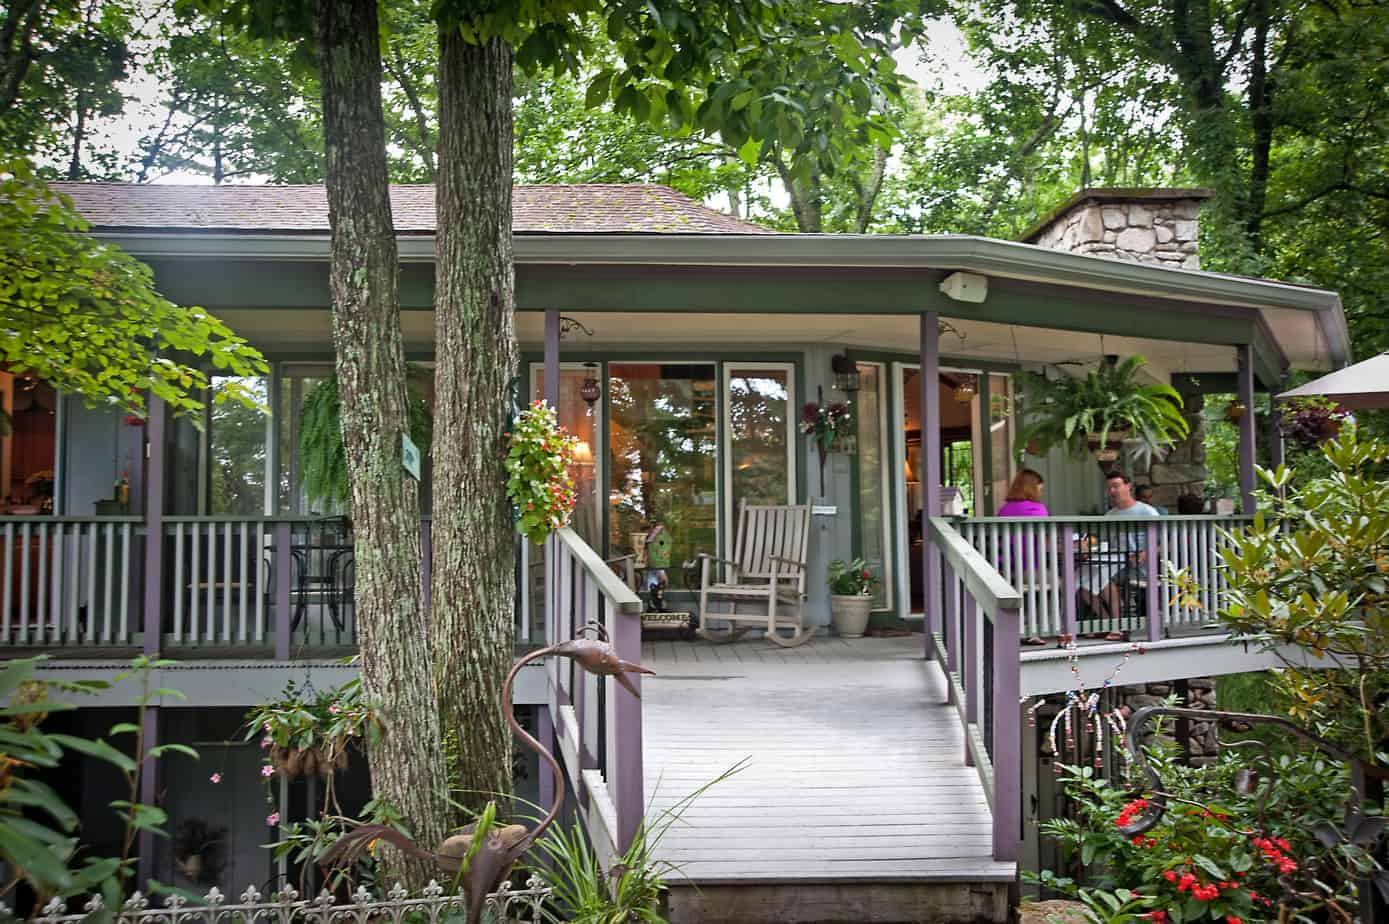 the front porch with rocking chairs and covered by trees at the crooked oak mountain in a bed and breakfast near asheville, nc